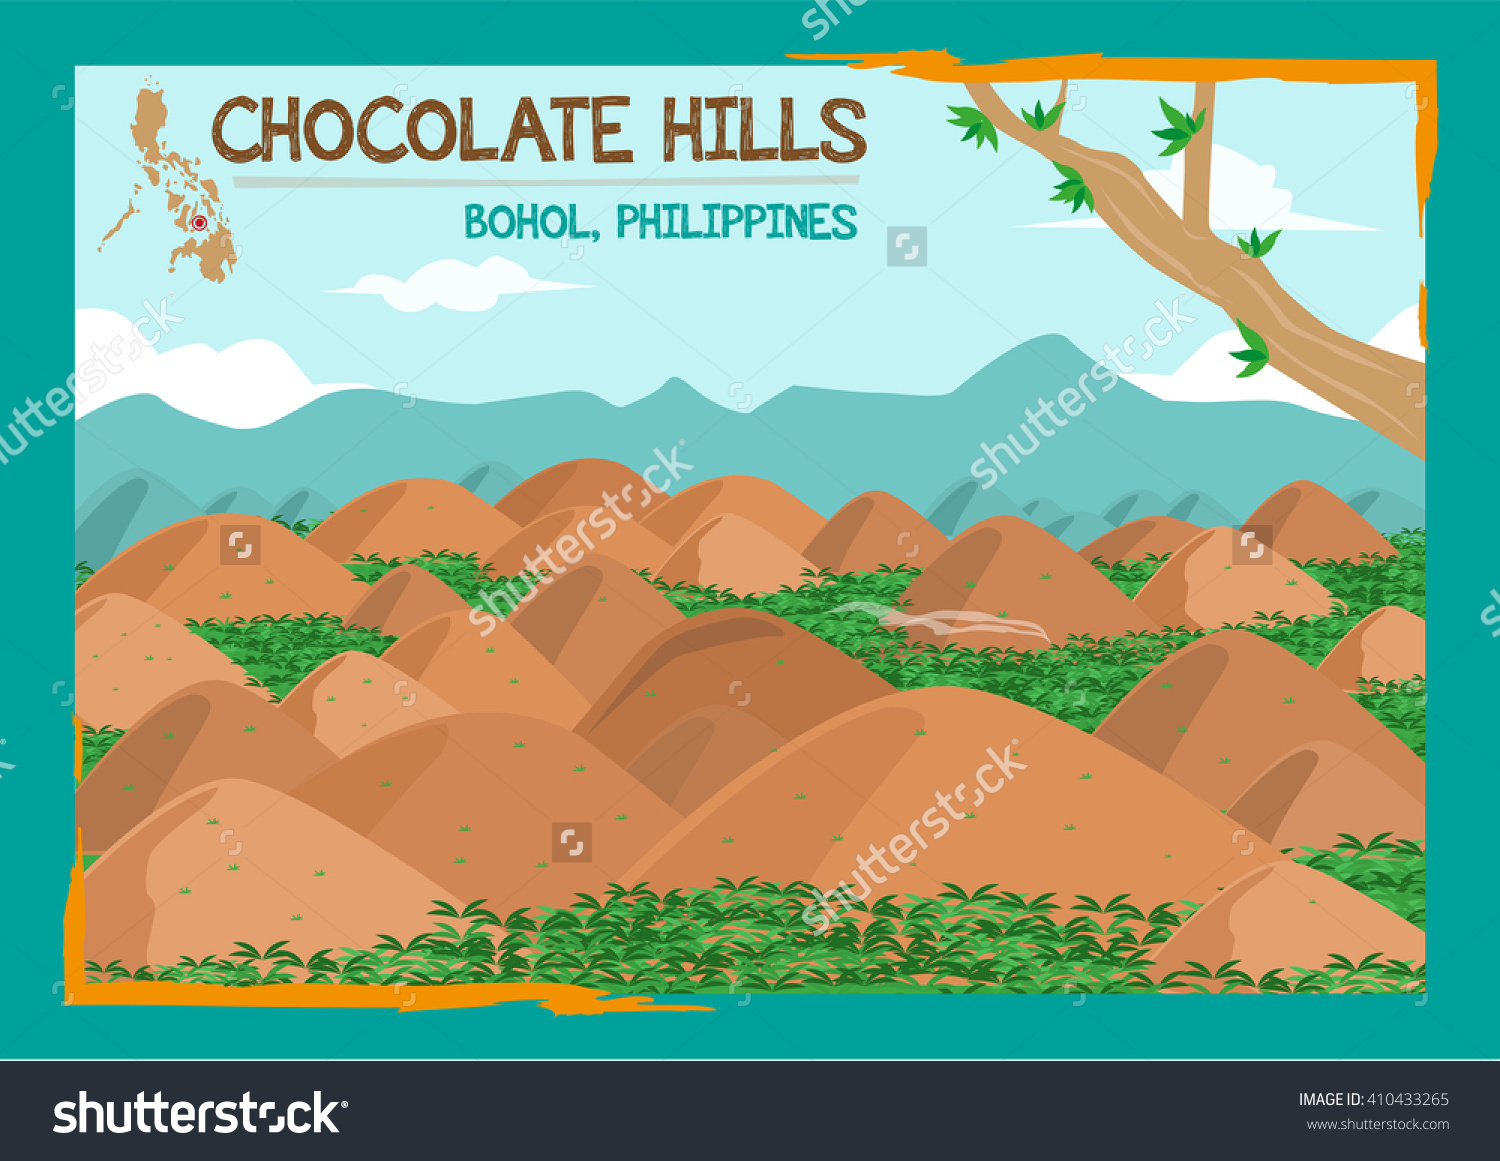 Chocolate Hills Formation Located Bohol Philippines Stock Vector.